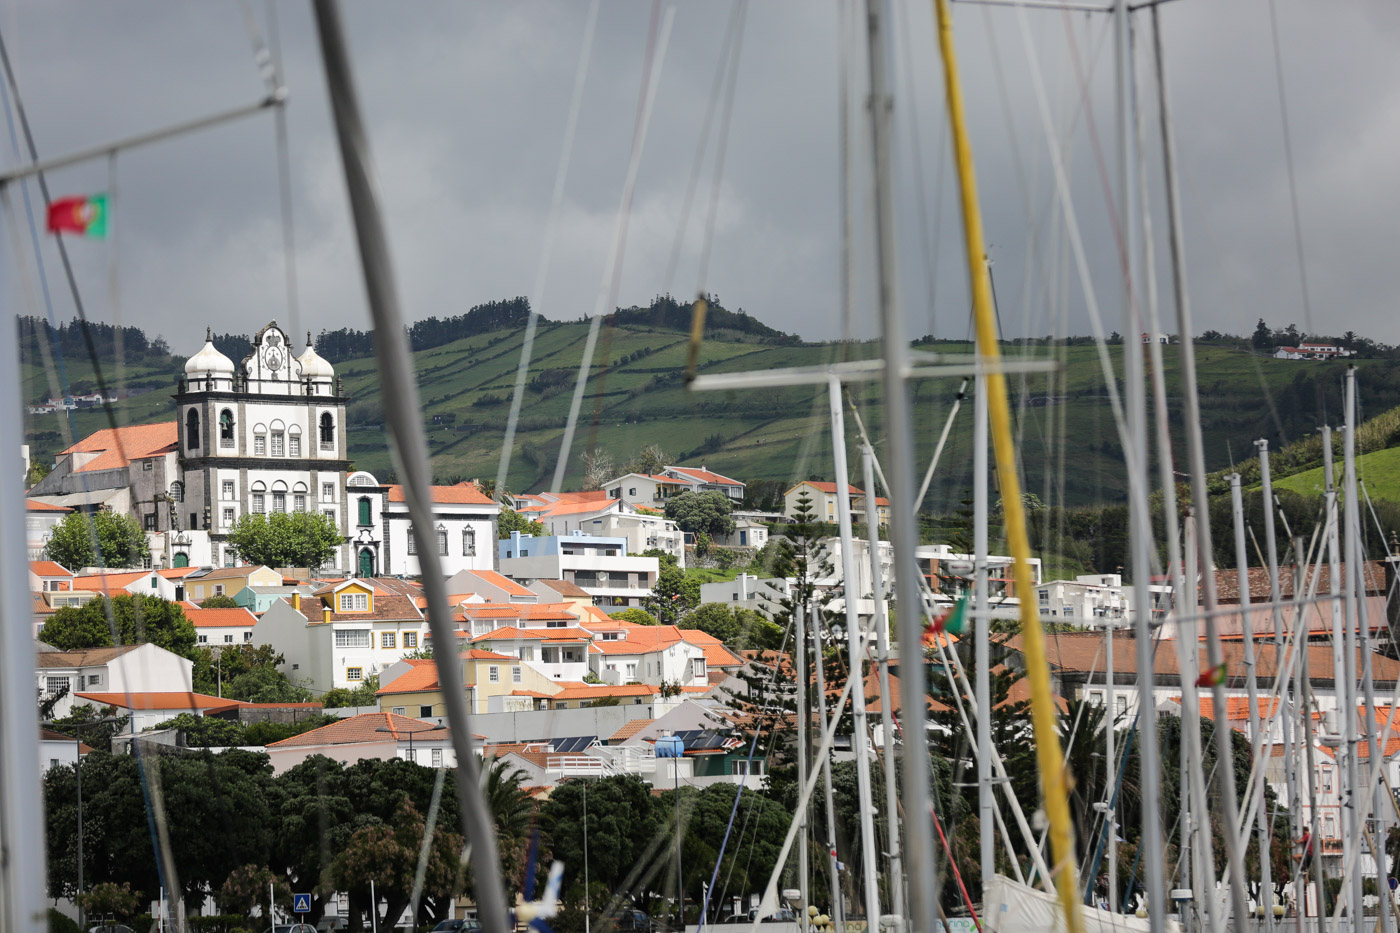 What to visit in Faial Azores